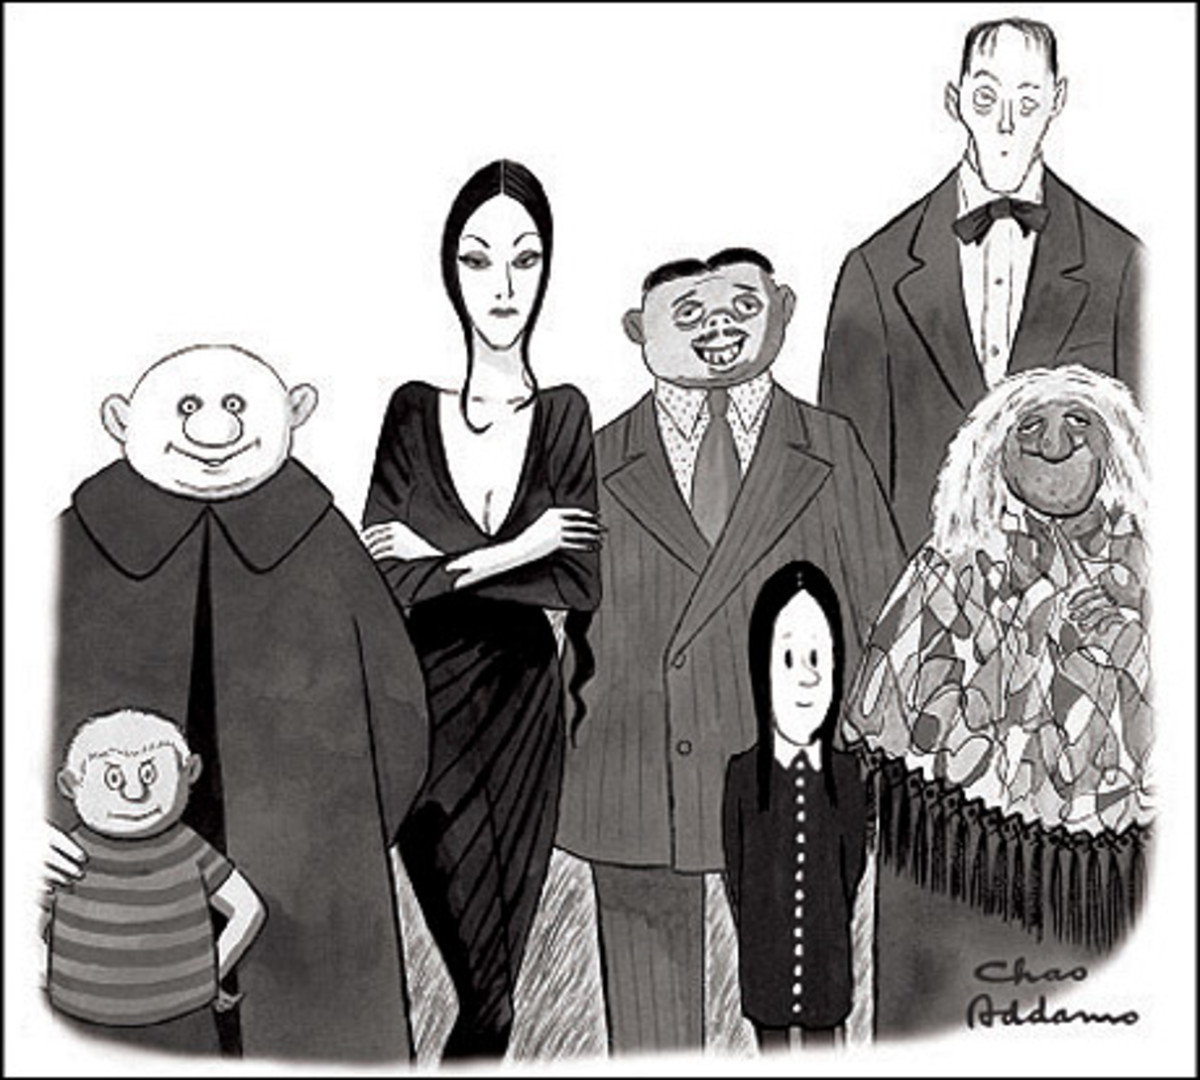 The Addams family as drawn by Charles Addams.